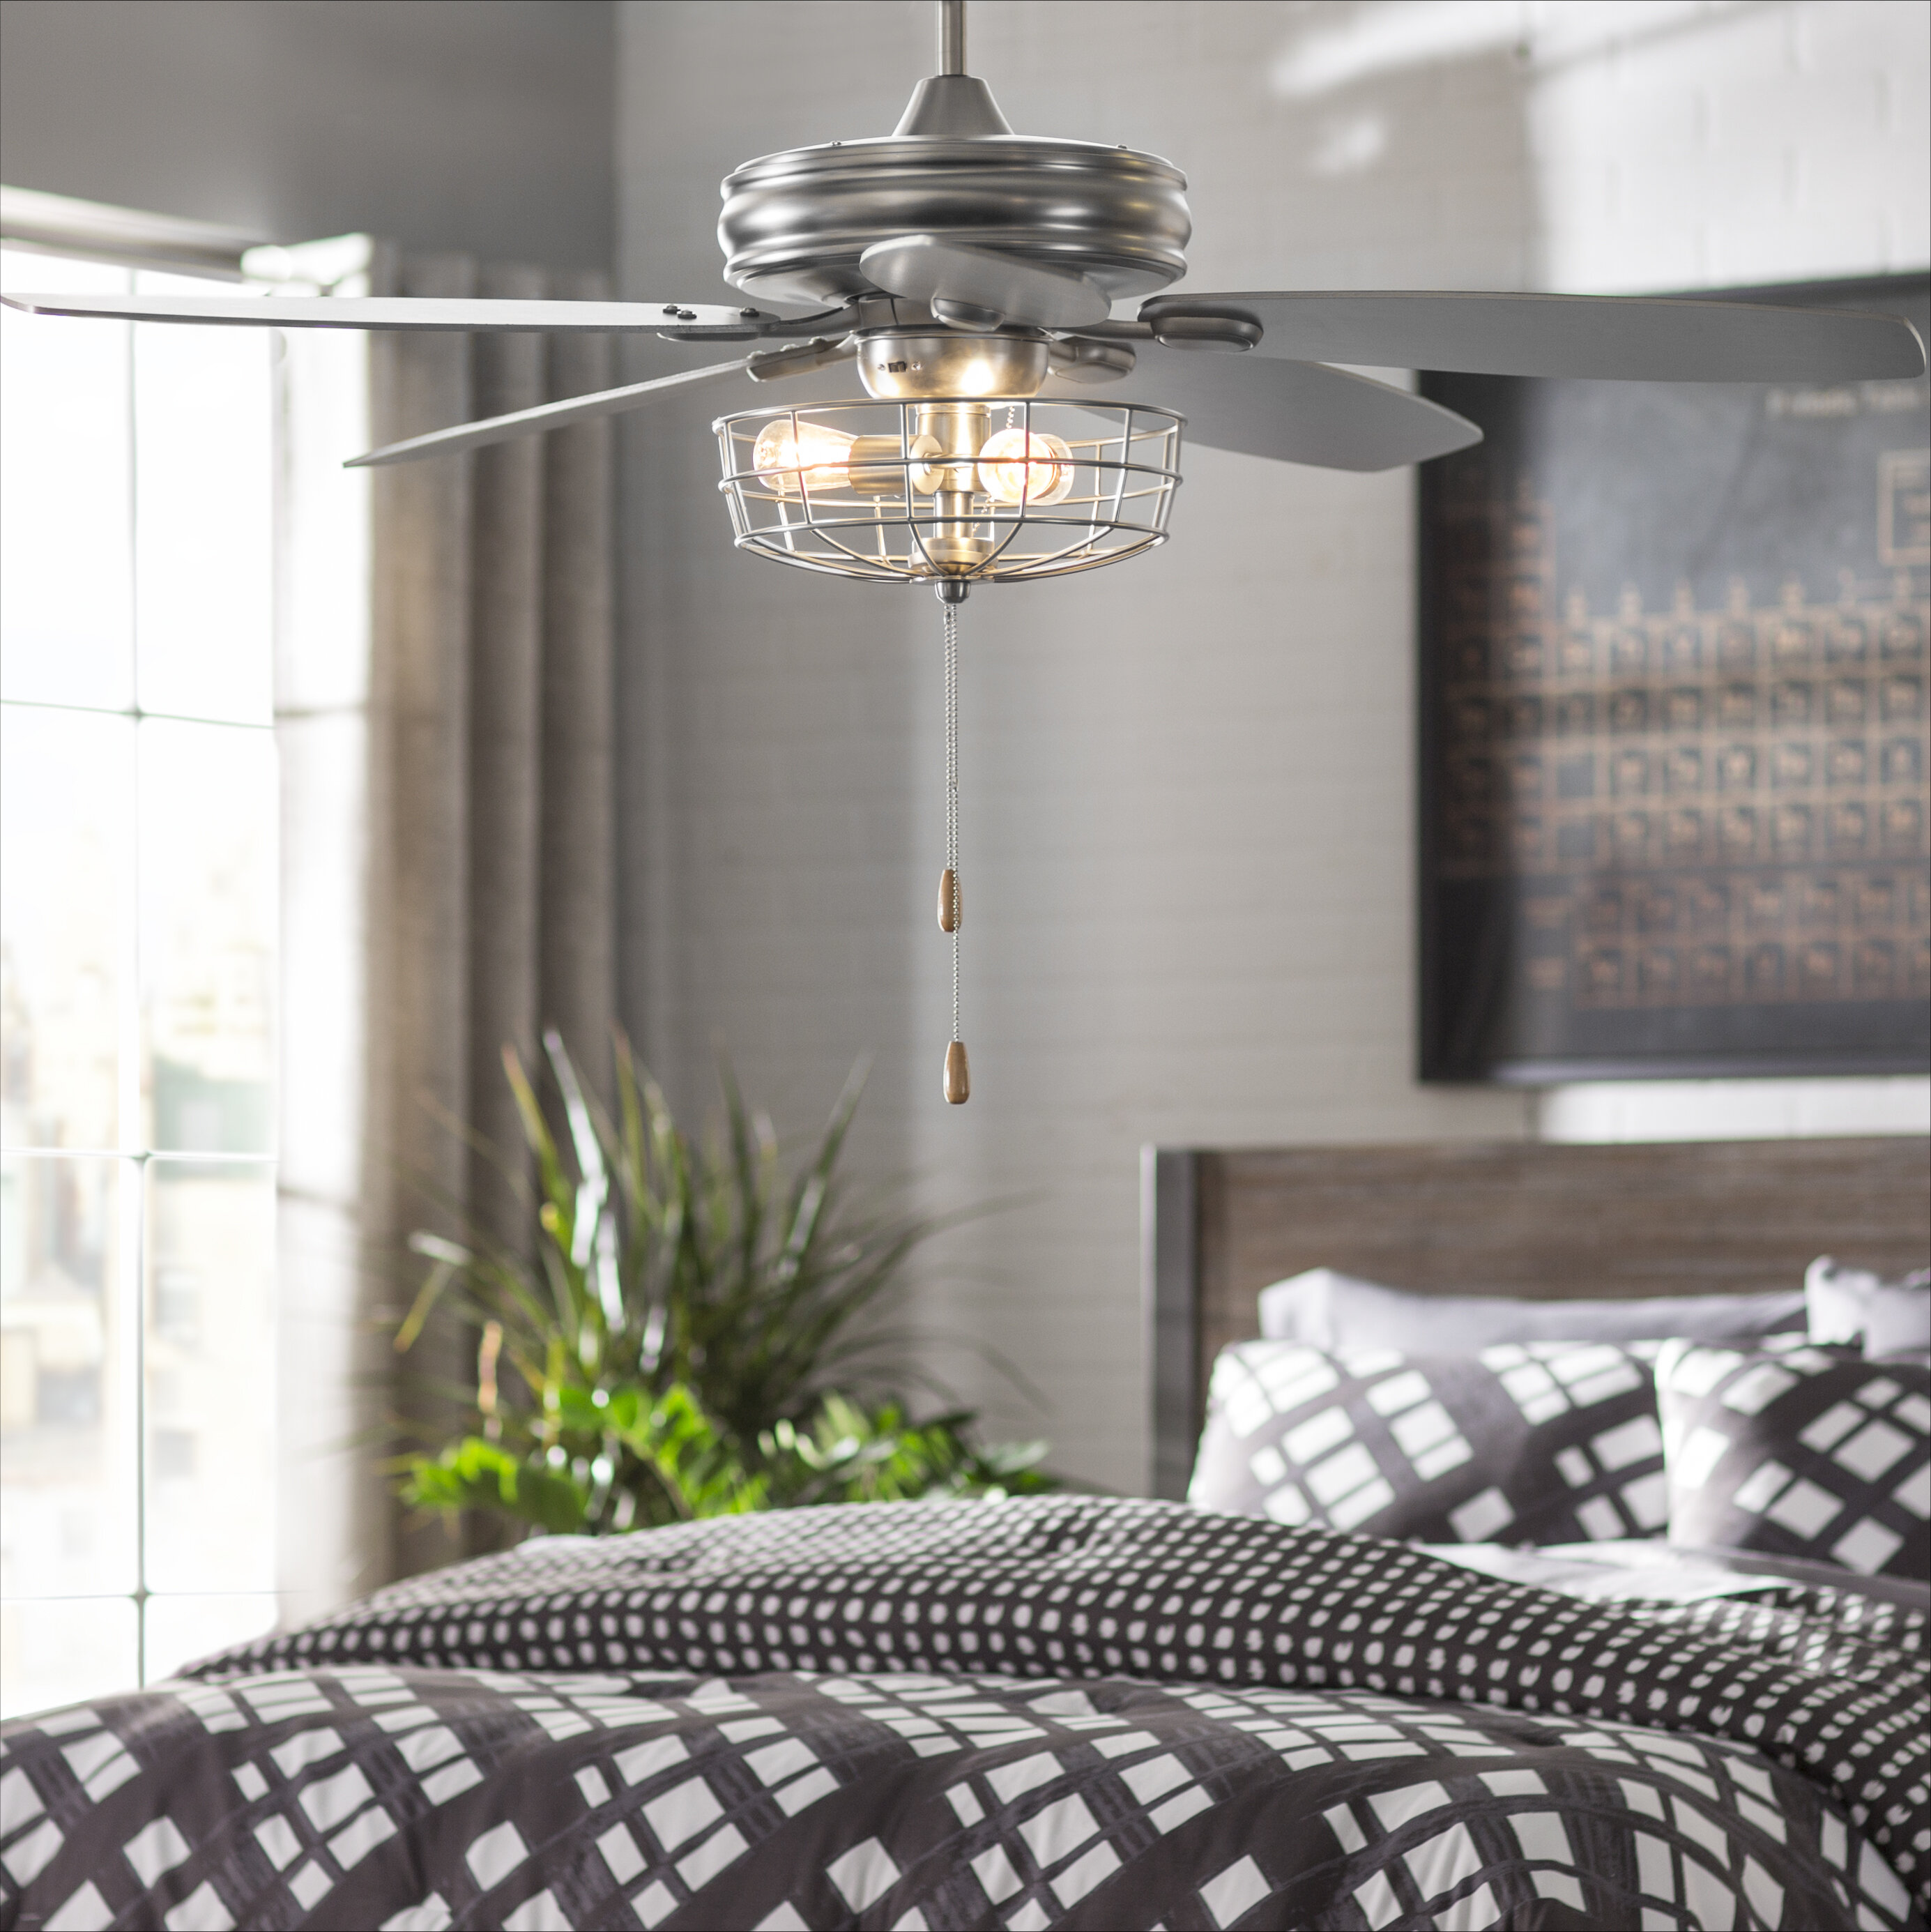 Trent Austin Design 52 Kyla 5 Blade Standard Ceiling Fan With Pull Chain And Light Kit Included Reviews Wayfair